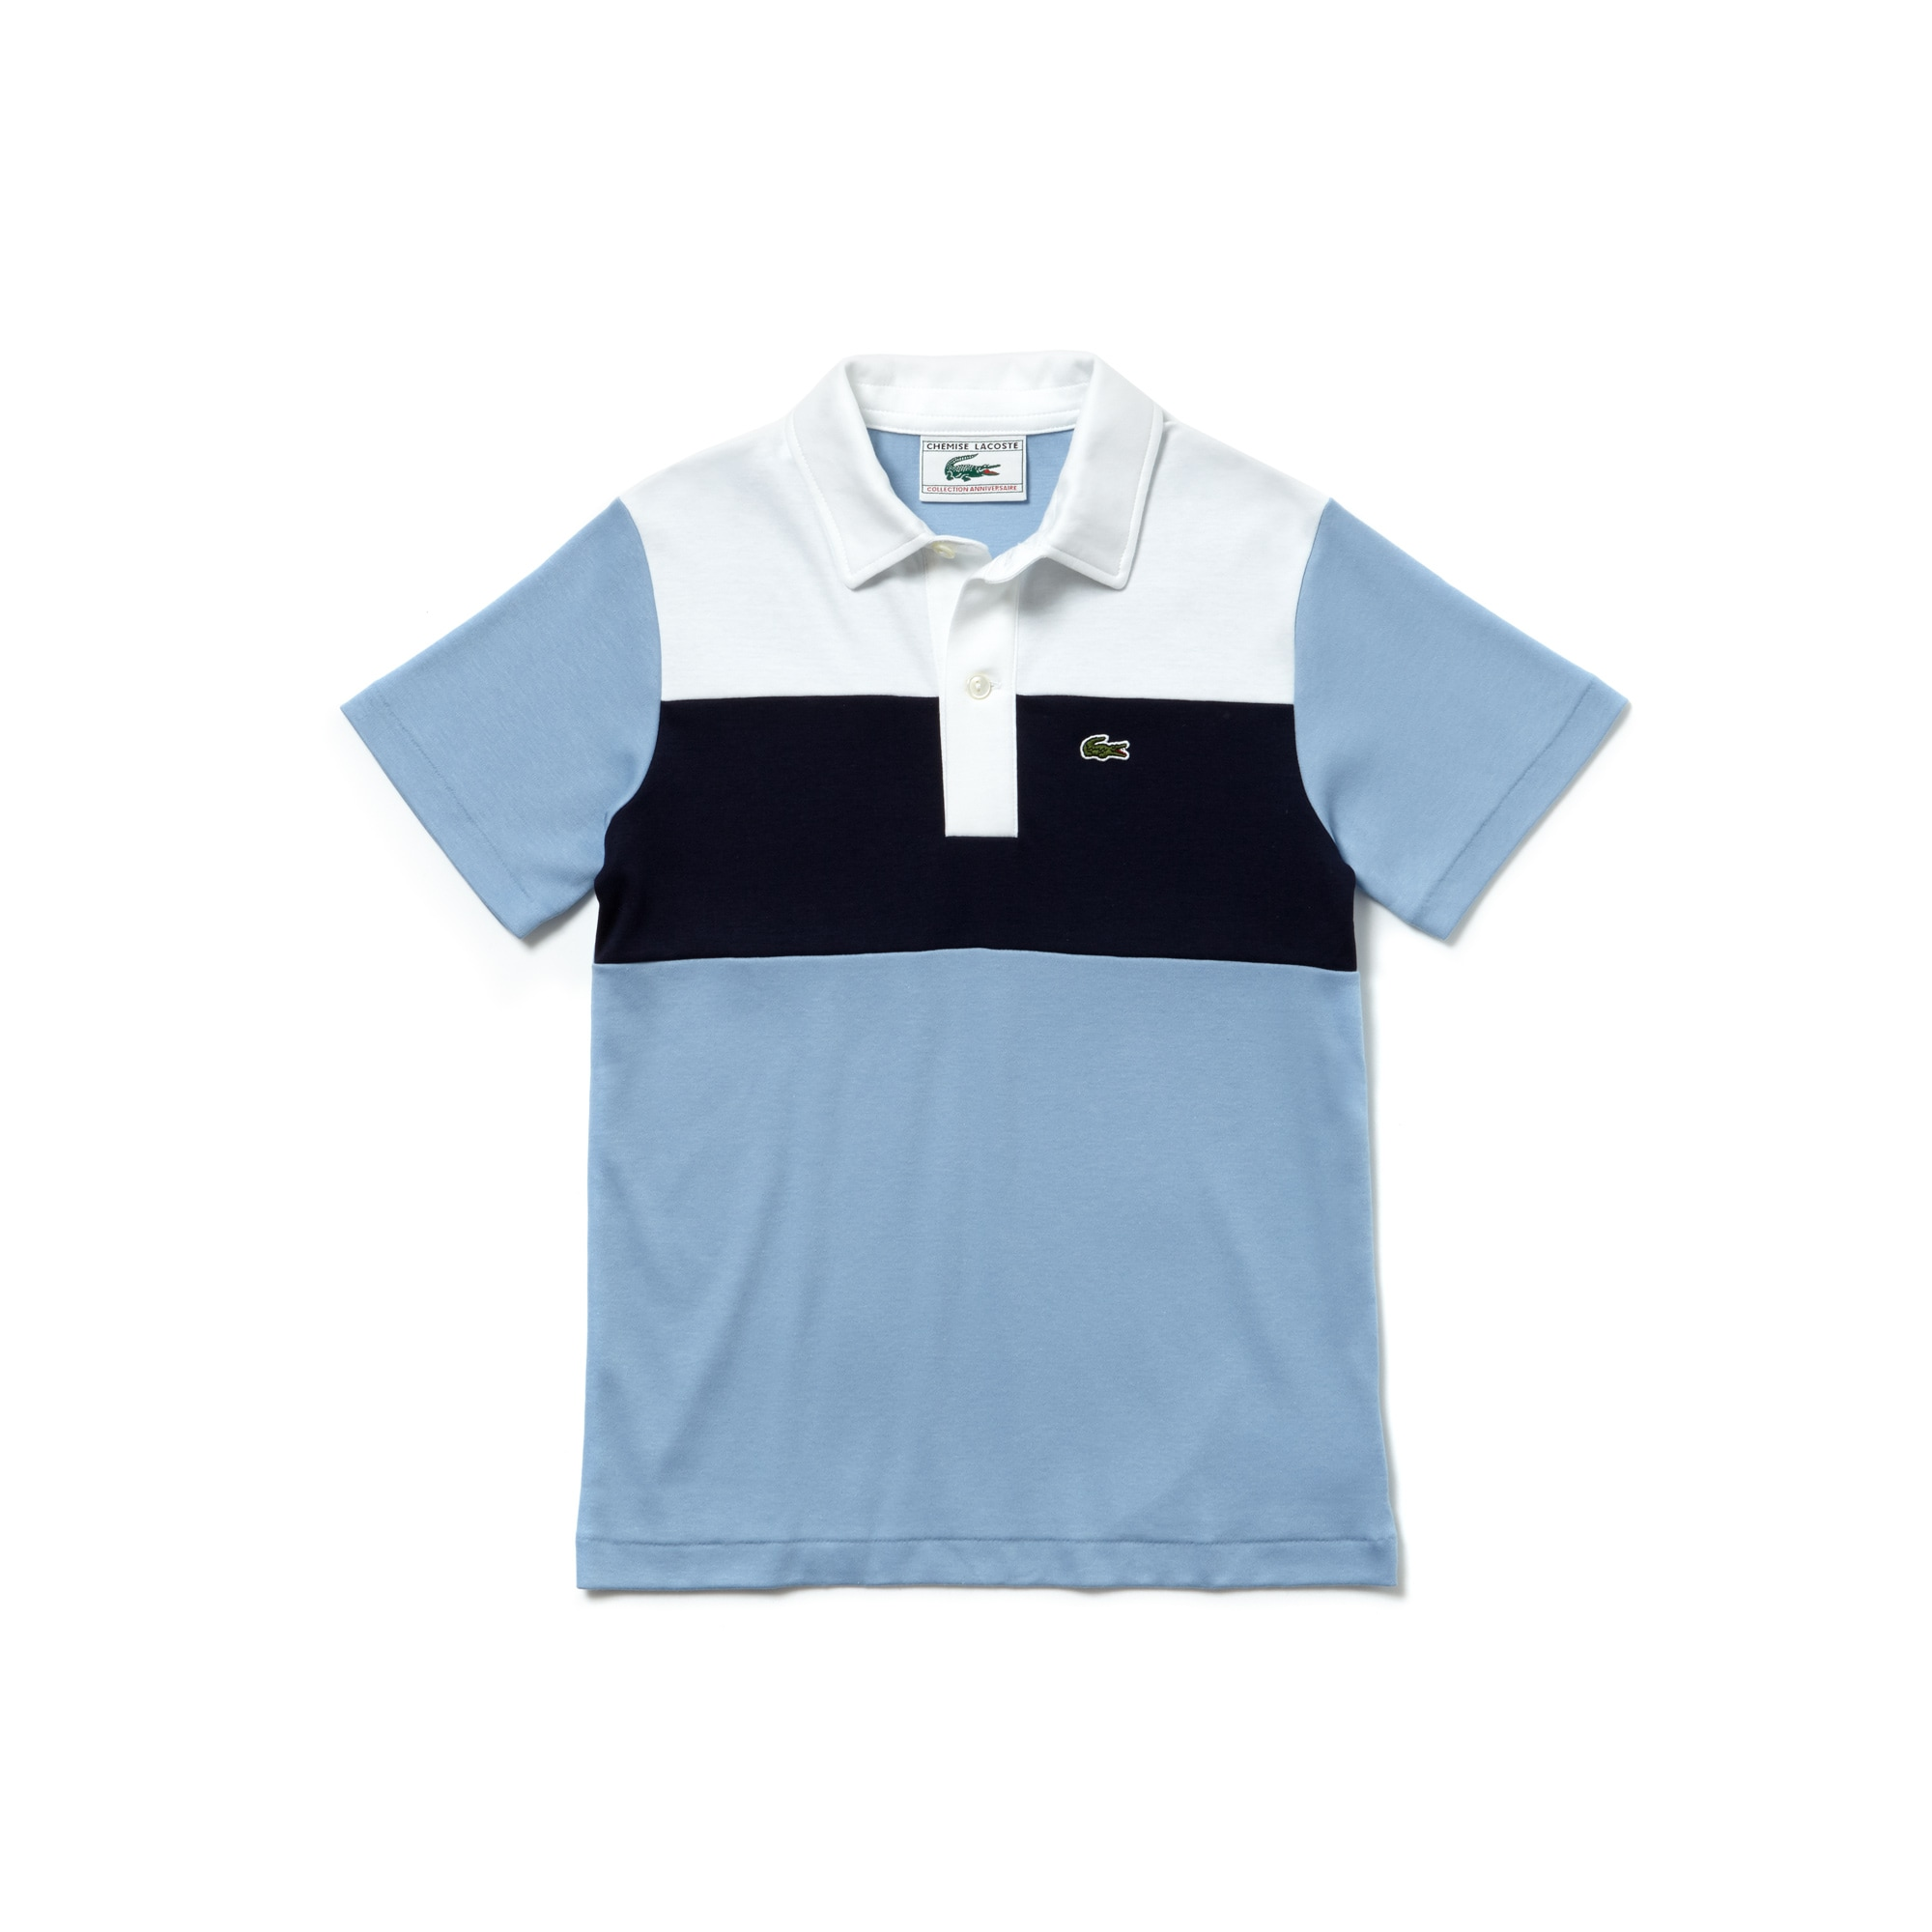 Jungen LACOSTE 85th Anniversary Limited Edition Poloshirt